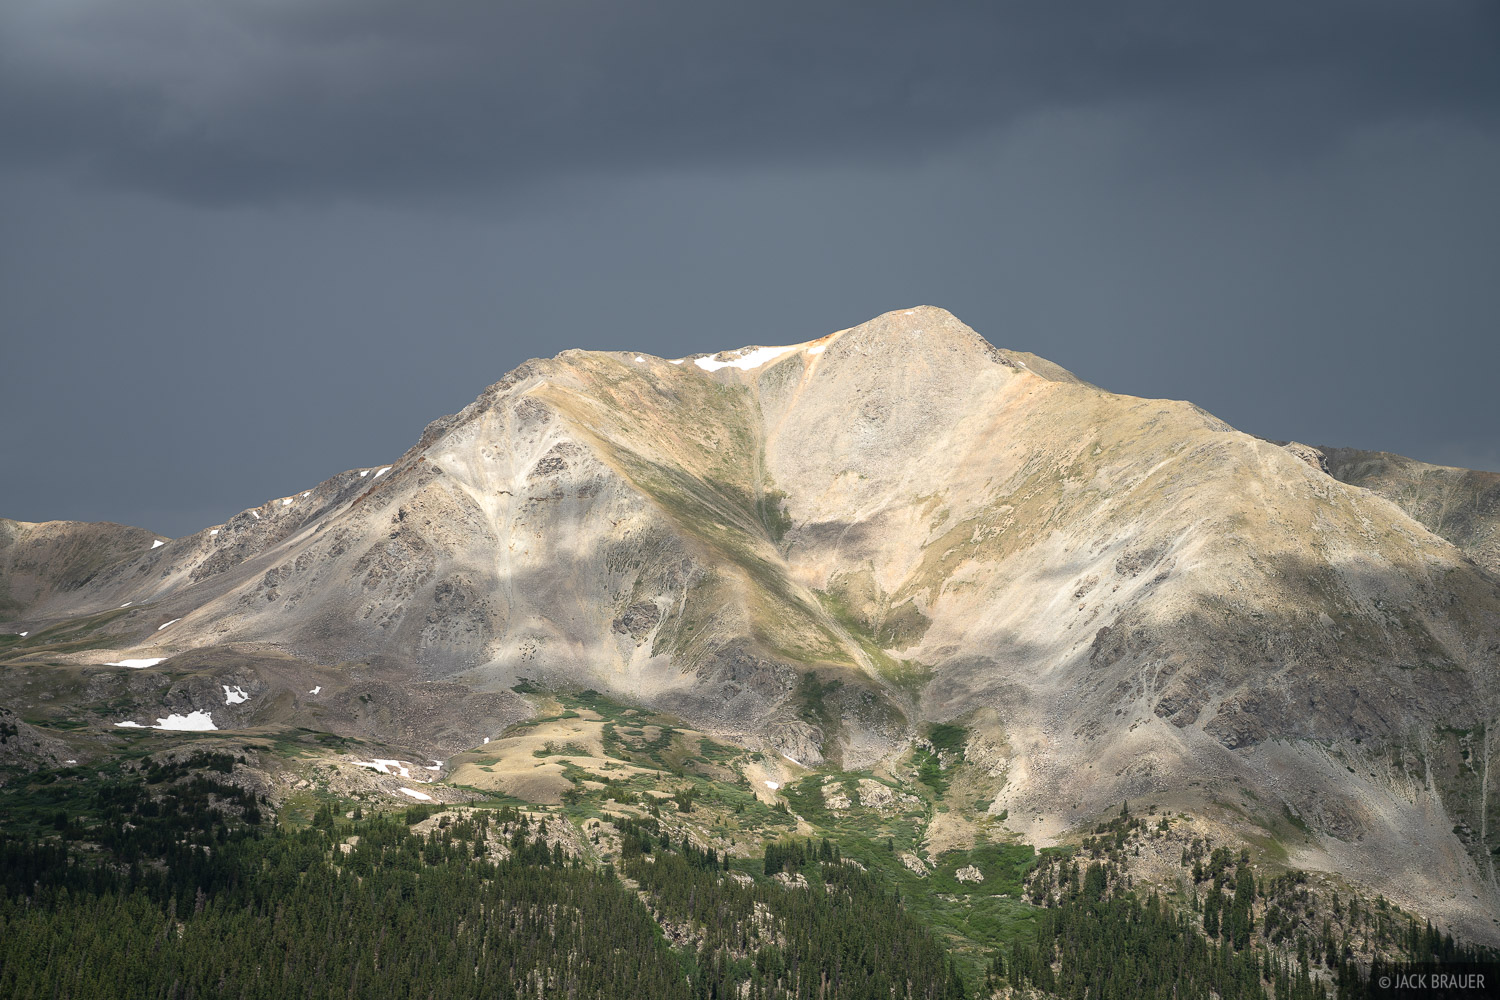 Collegiate Peaks Wilderness, Colorado, Mount Belford, Sawatch Range, 14er, photo